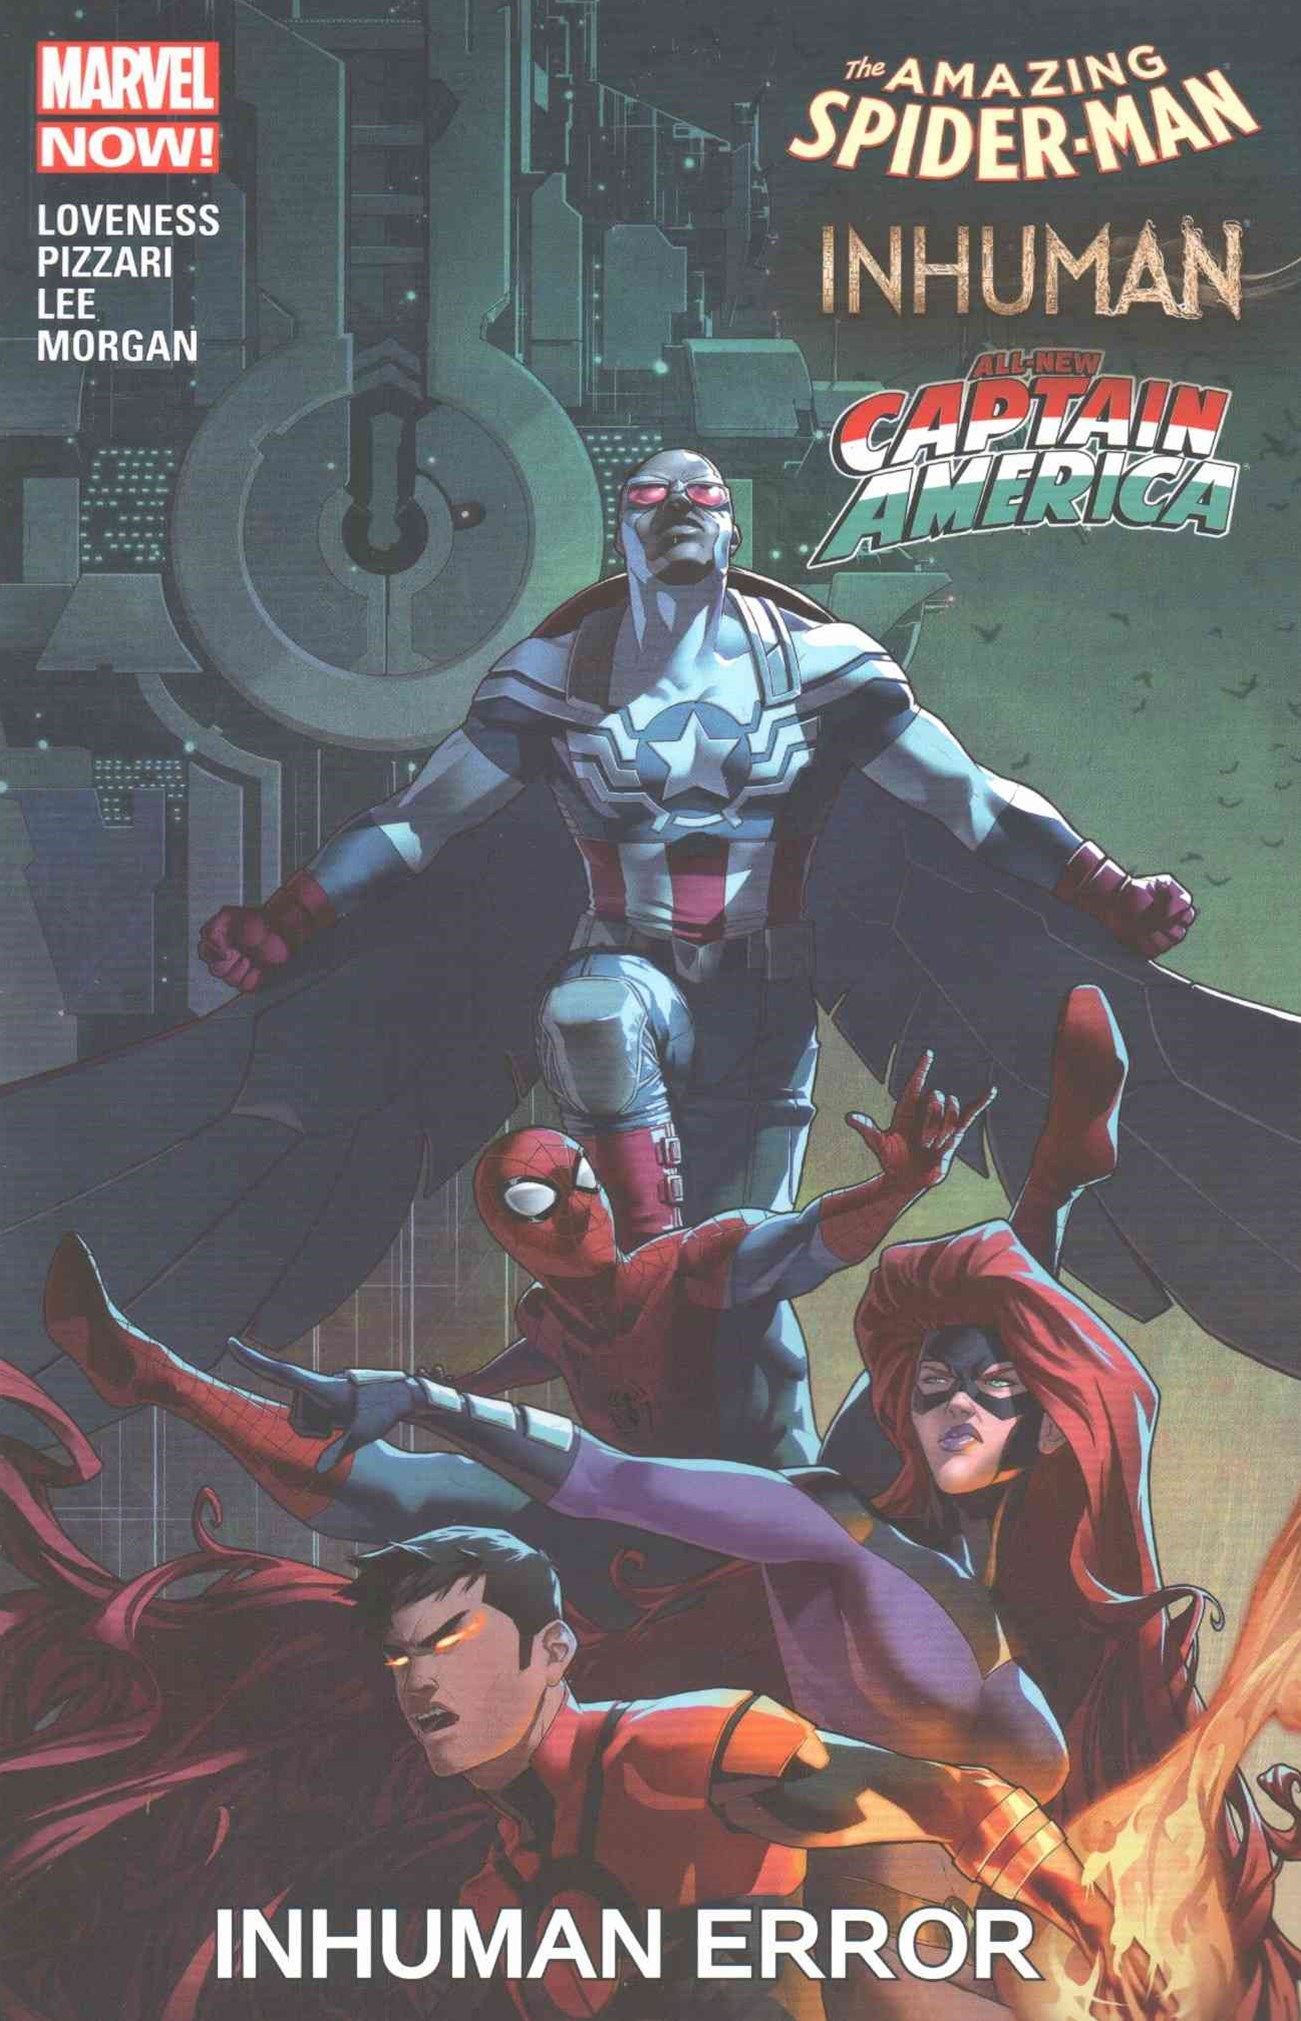 Amazing Spider-Man/Inhumans/All-New Captain America